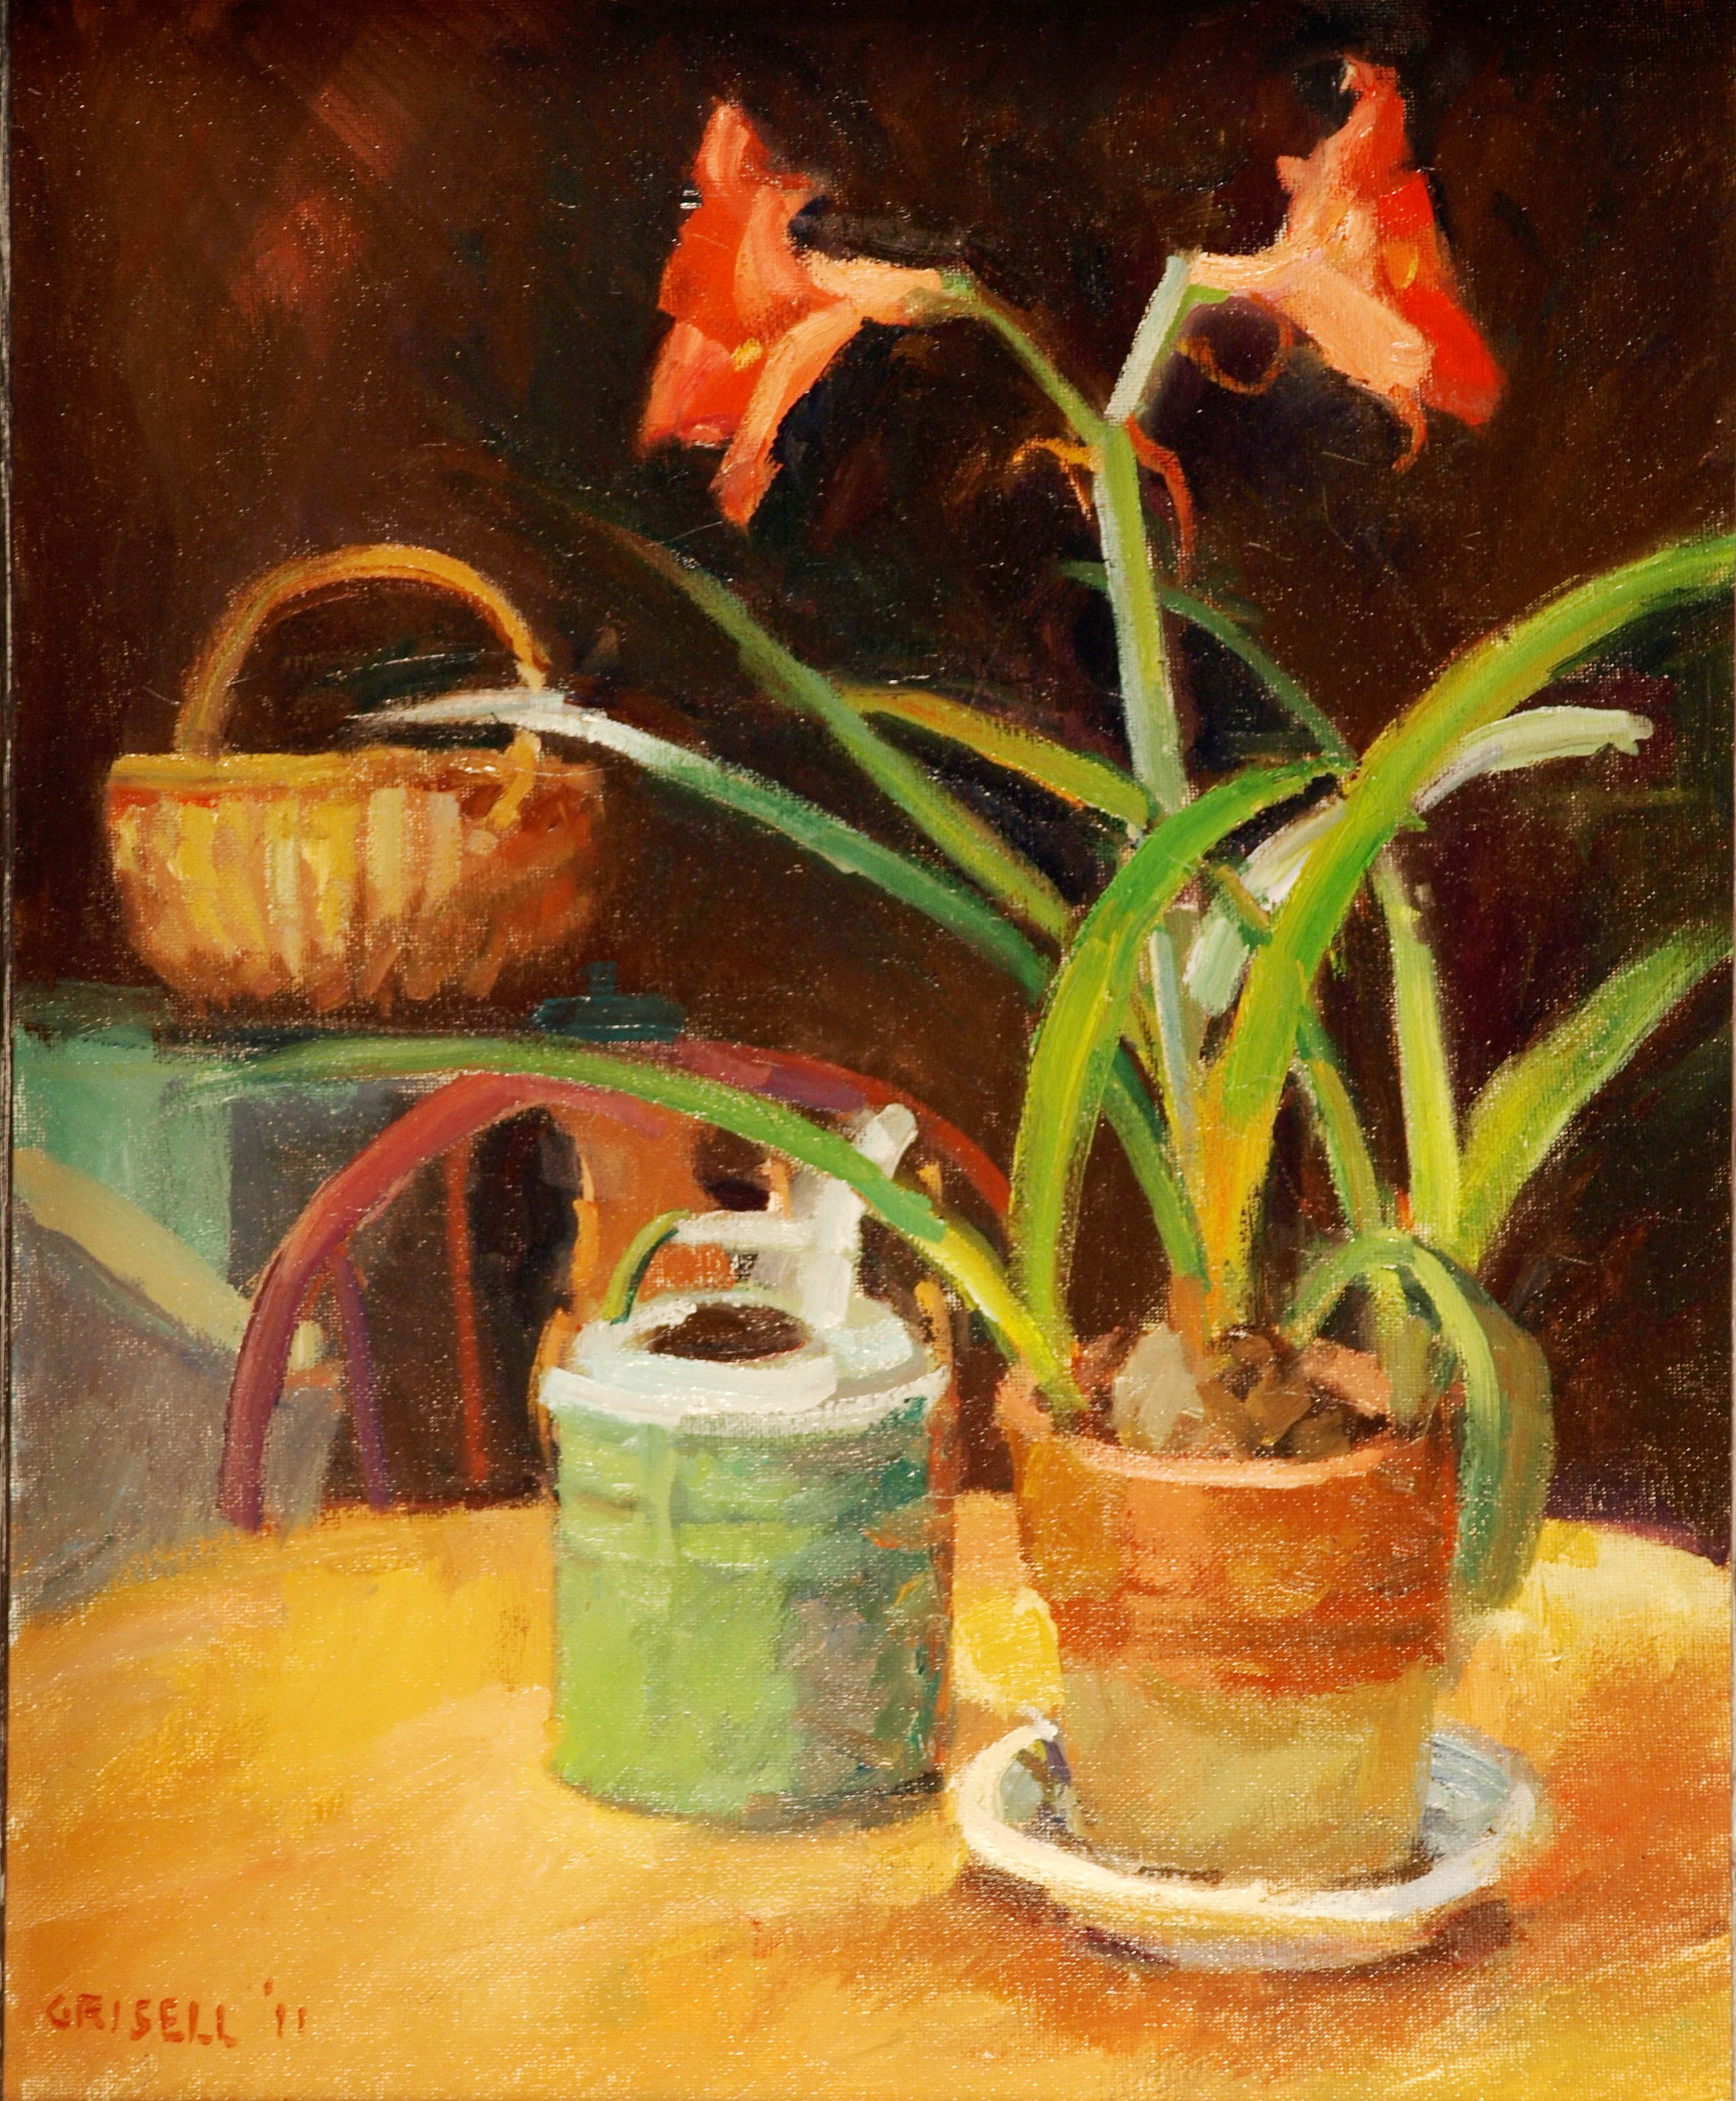 Red Amaryllis, Oil on Canvas, 20 x 16 Inches, by Susan Grisell, $450